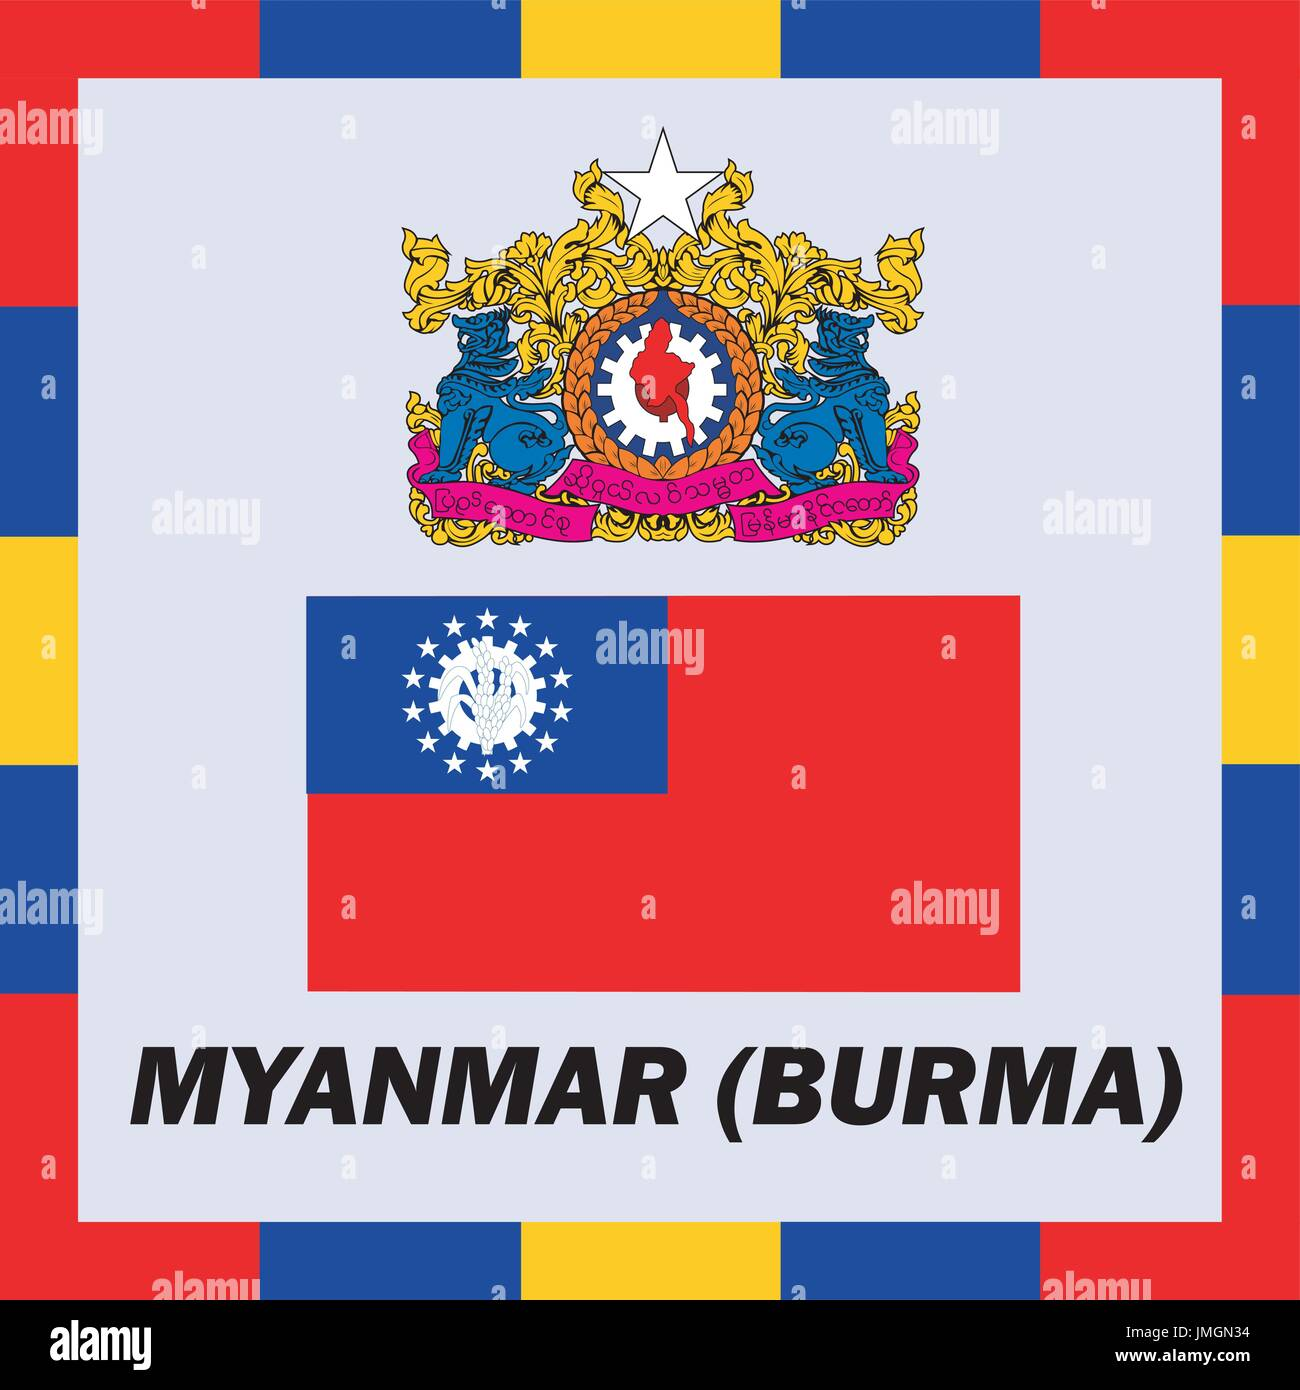 Official ensigns, flag and coat of arm of Myanmar (Burma) - Stock Vector